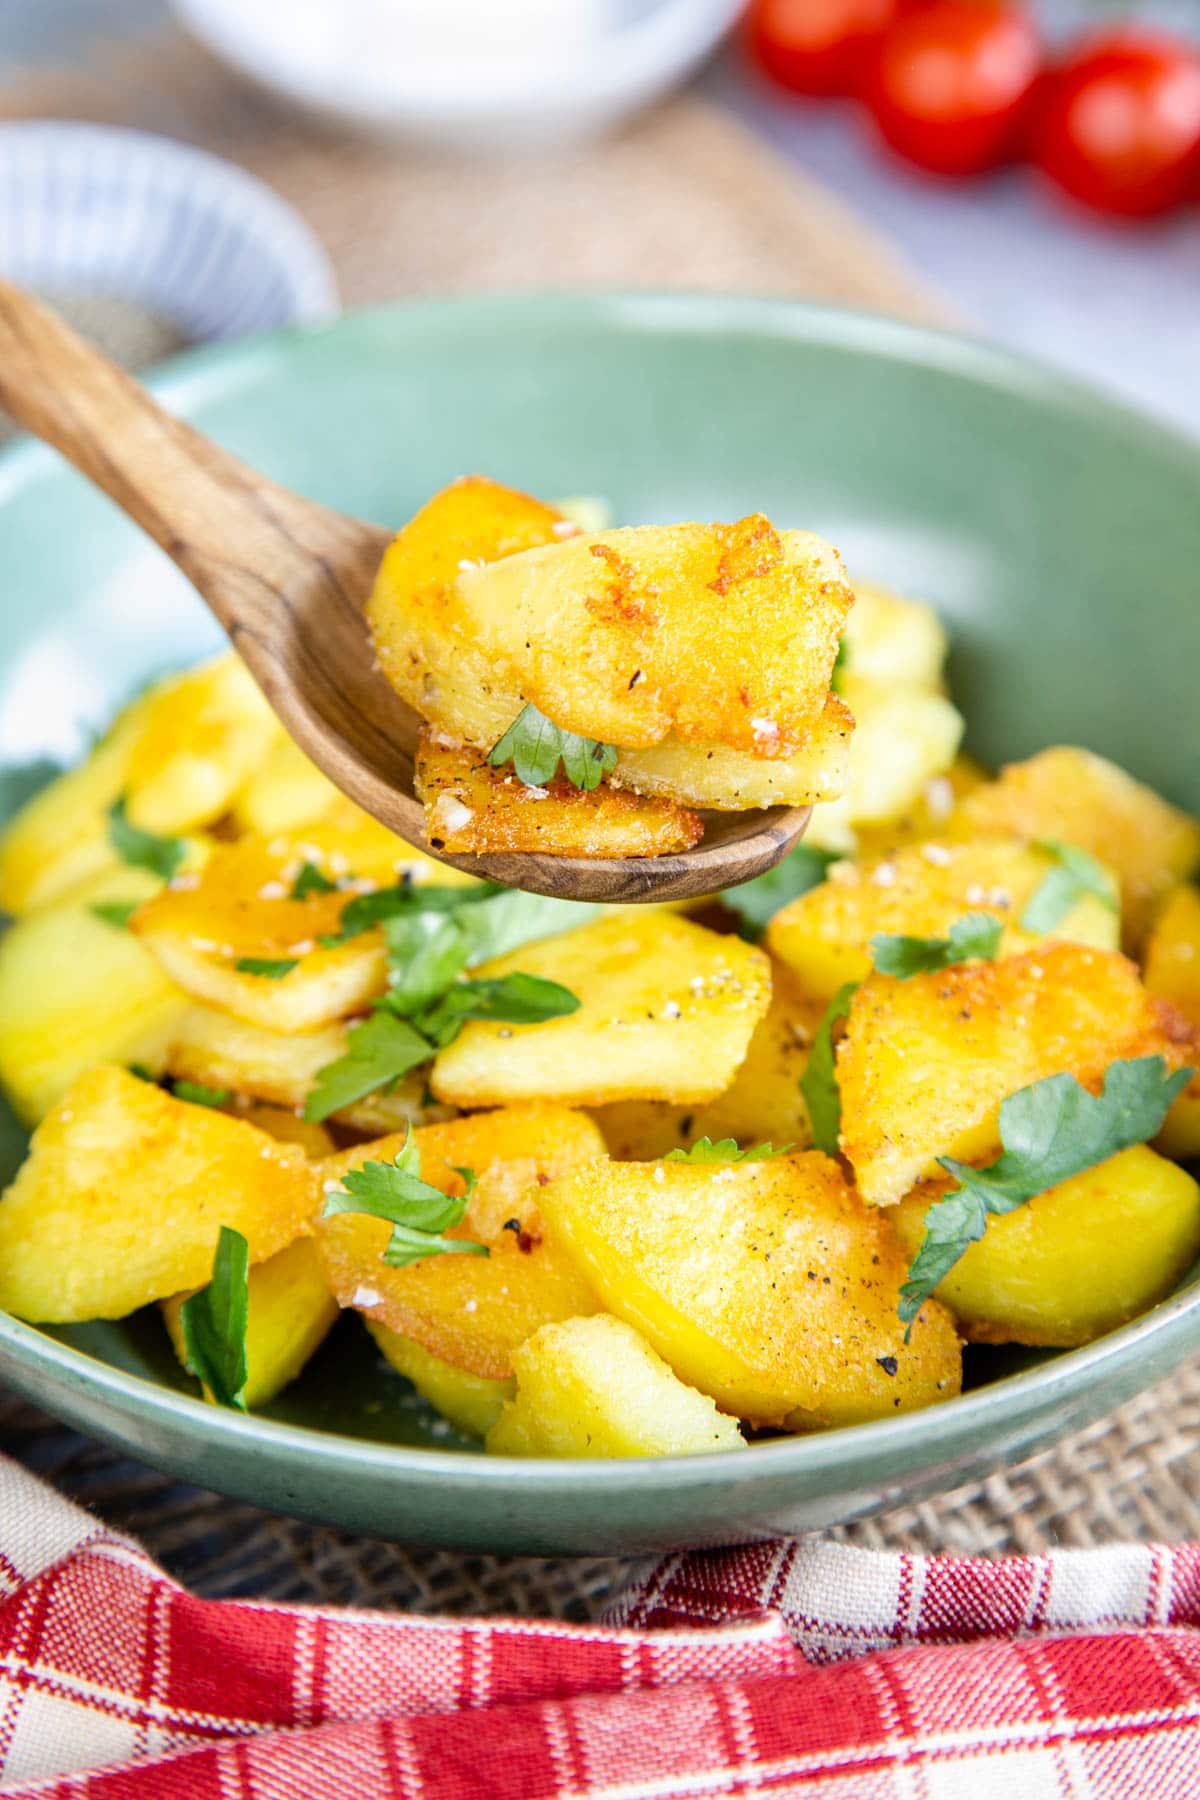 A wooden spoon with a few slices of golden crispy potato held above a green bowl with more potatoes